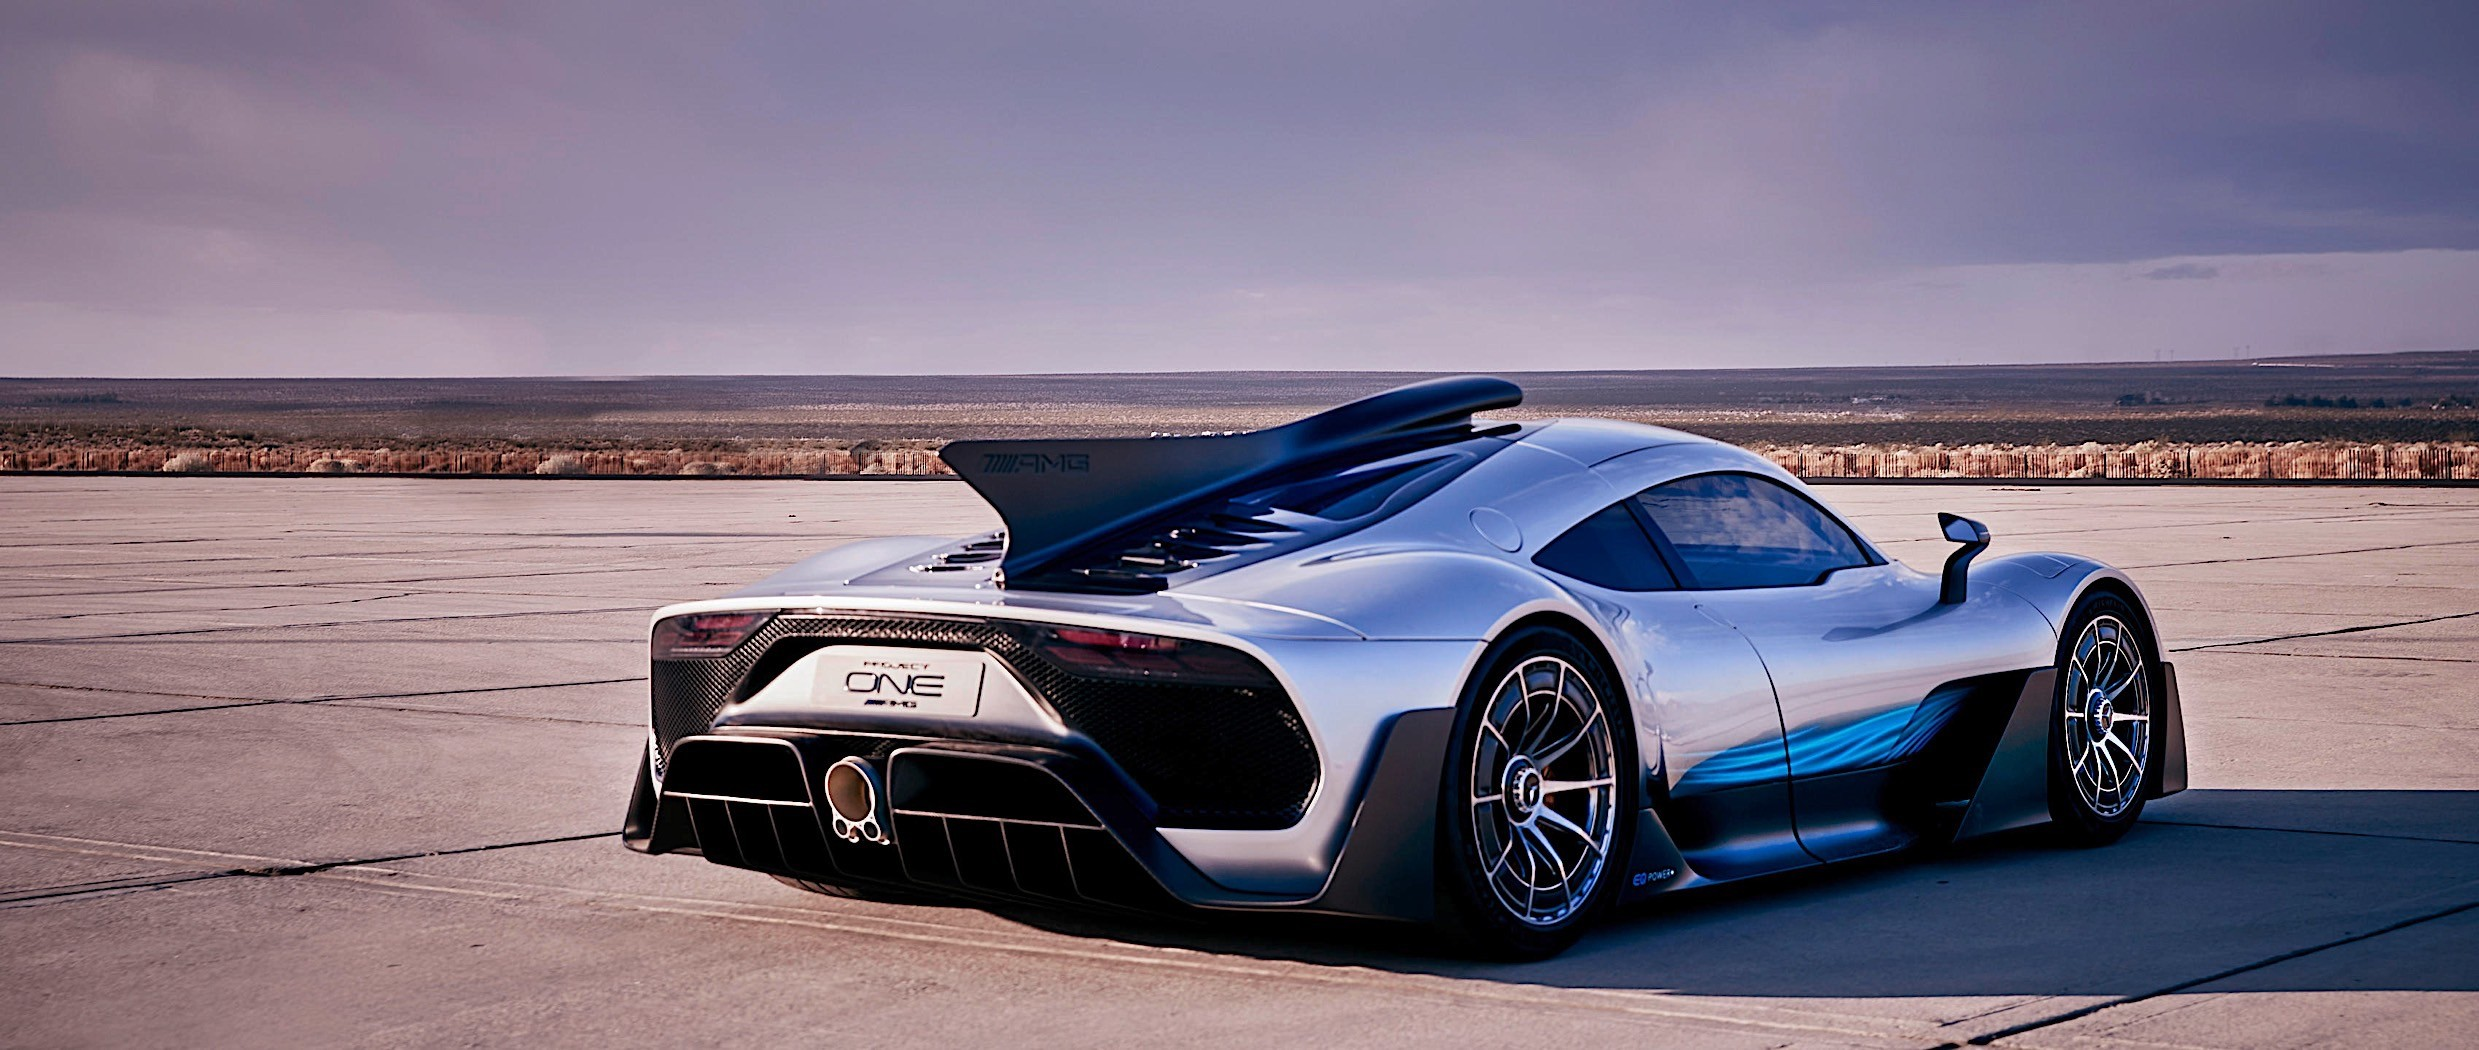 mercedes amg project one shines in new wallpaper gallery. Black Bedroom Furniture Sets. Home Design Ideas